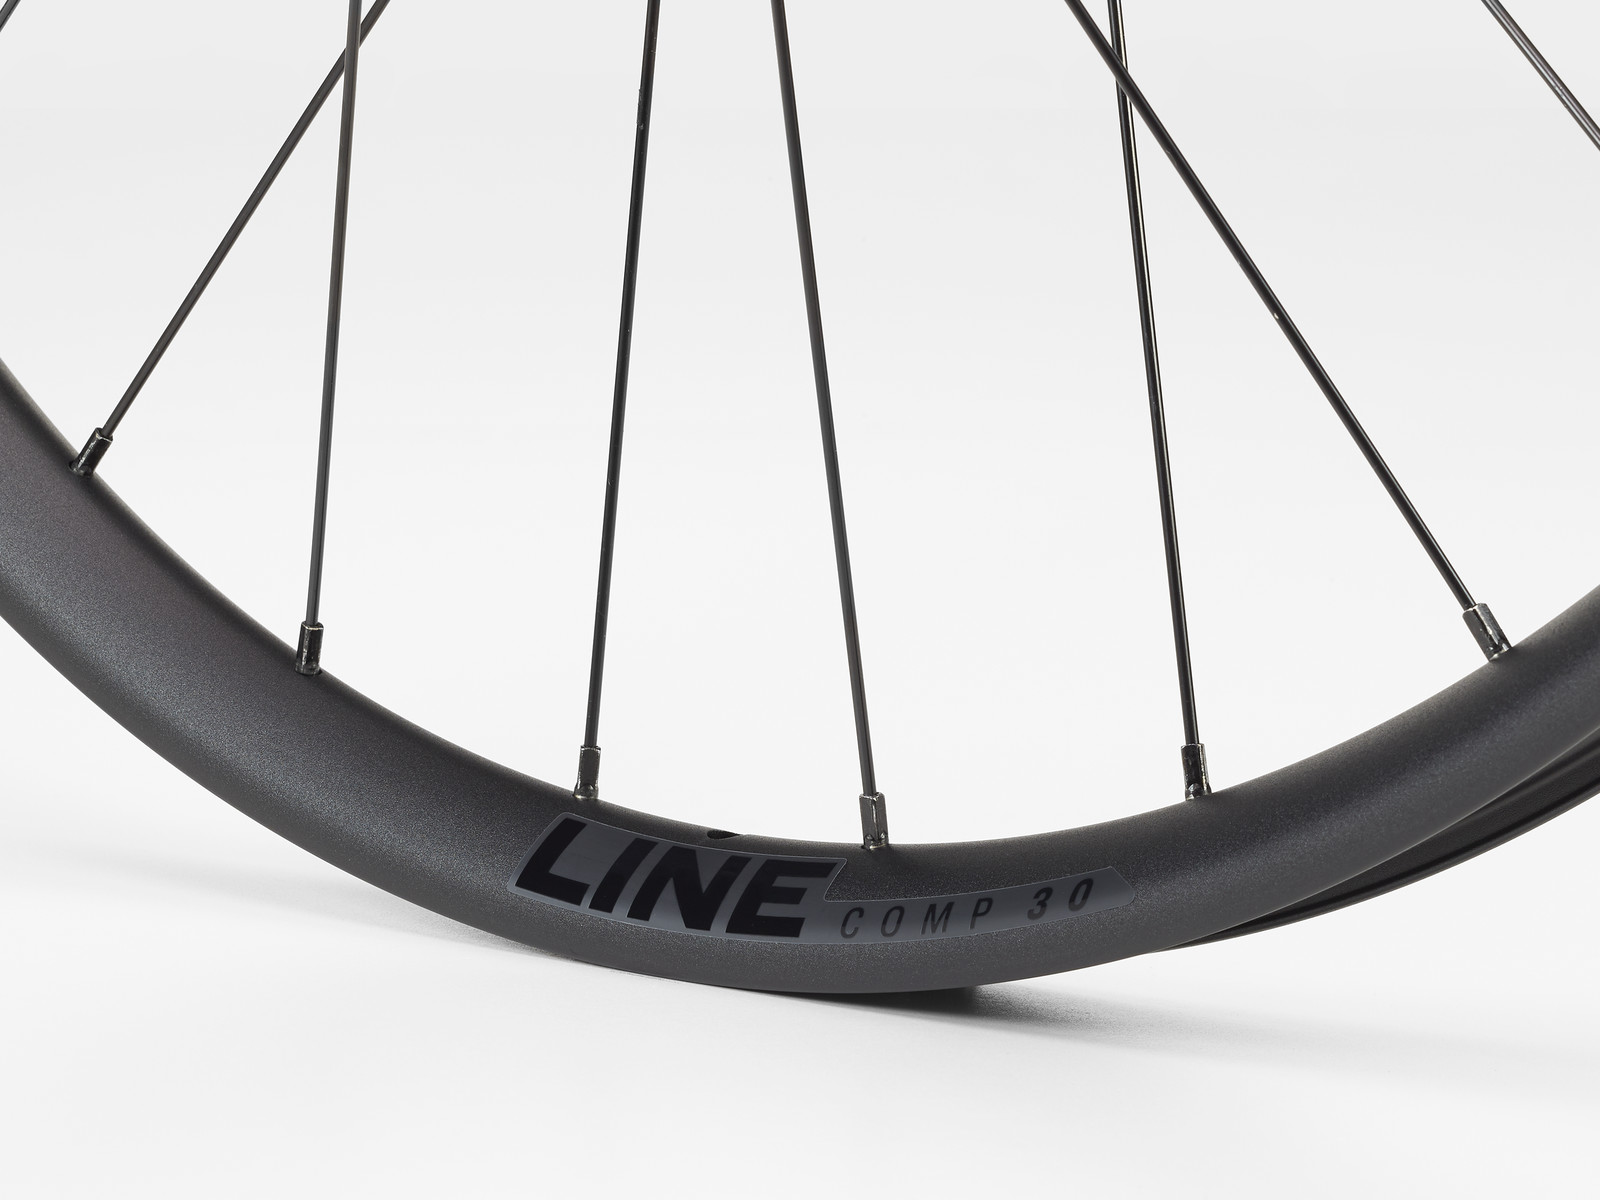 $349 for the Set - Bontrager Updates Mountain Wheel Offering with All-New Line Comp 30 TLR